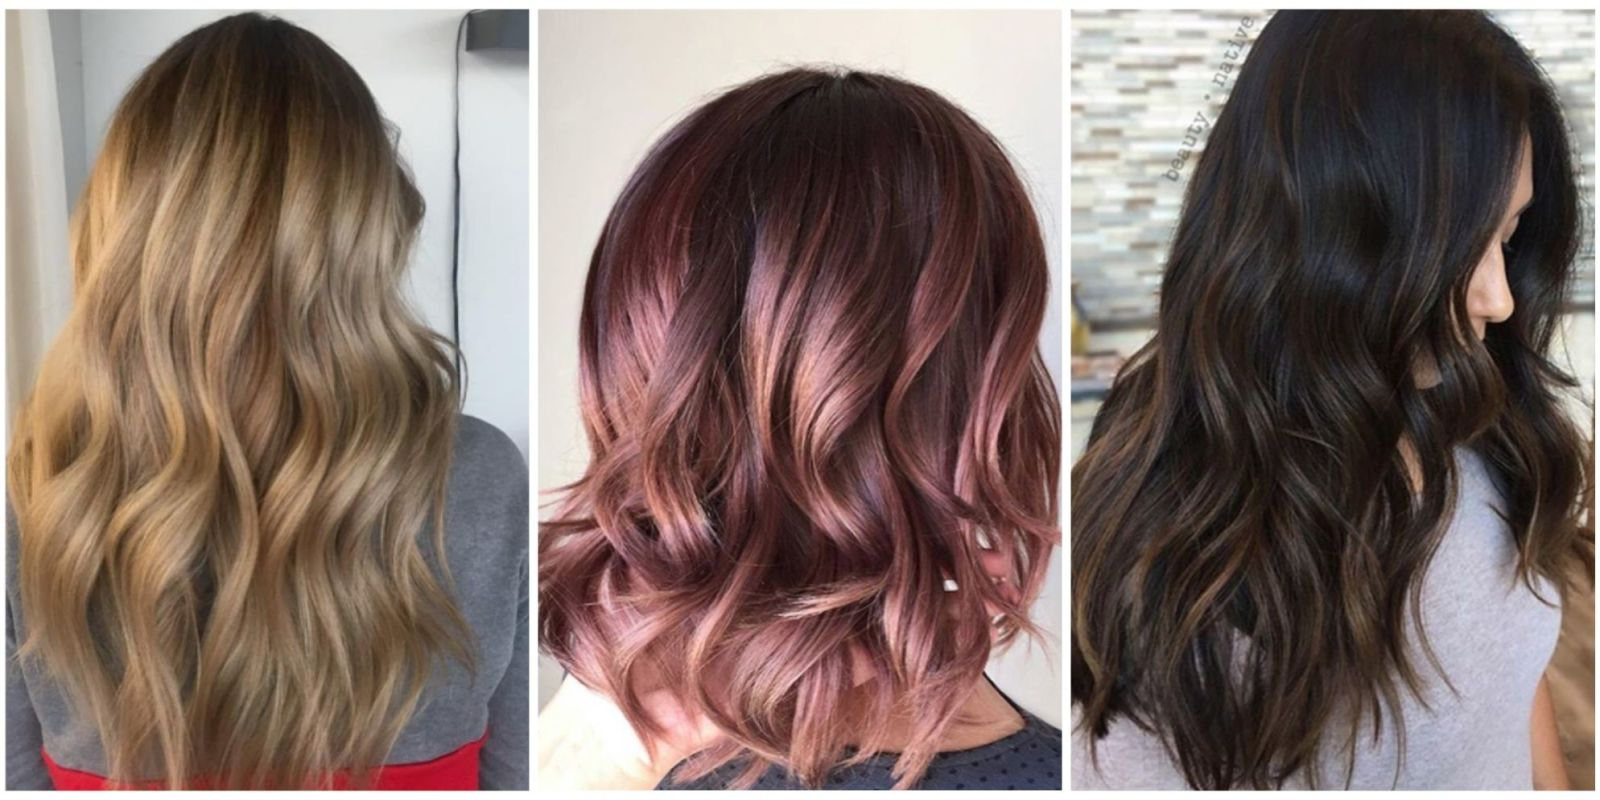 2018 Hairstyle For Dark Hair Color: Hair Color Ideas And Styles For 2018